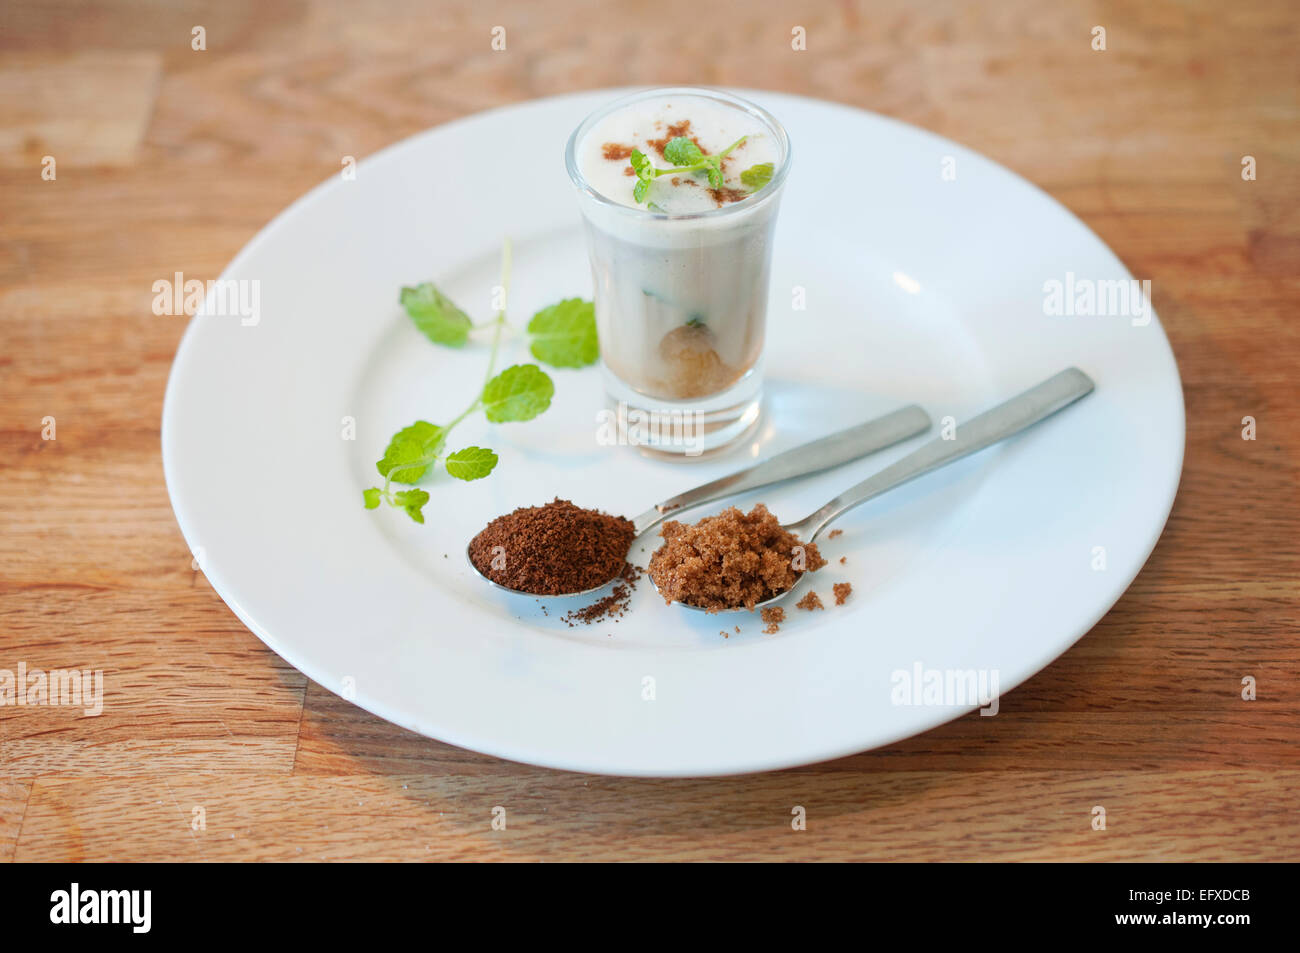 Homemade specialty coffee beverage with fresh mint, brown sugar and frothy soy milk. Serve chilled over ice or warm. - Stock Image